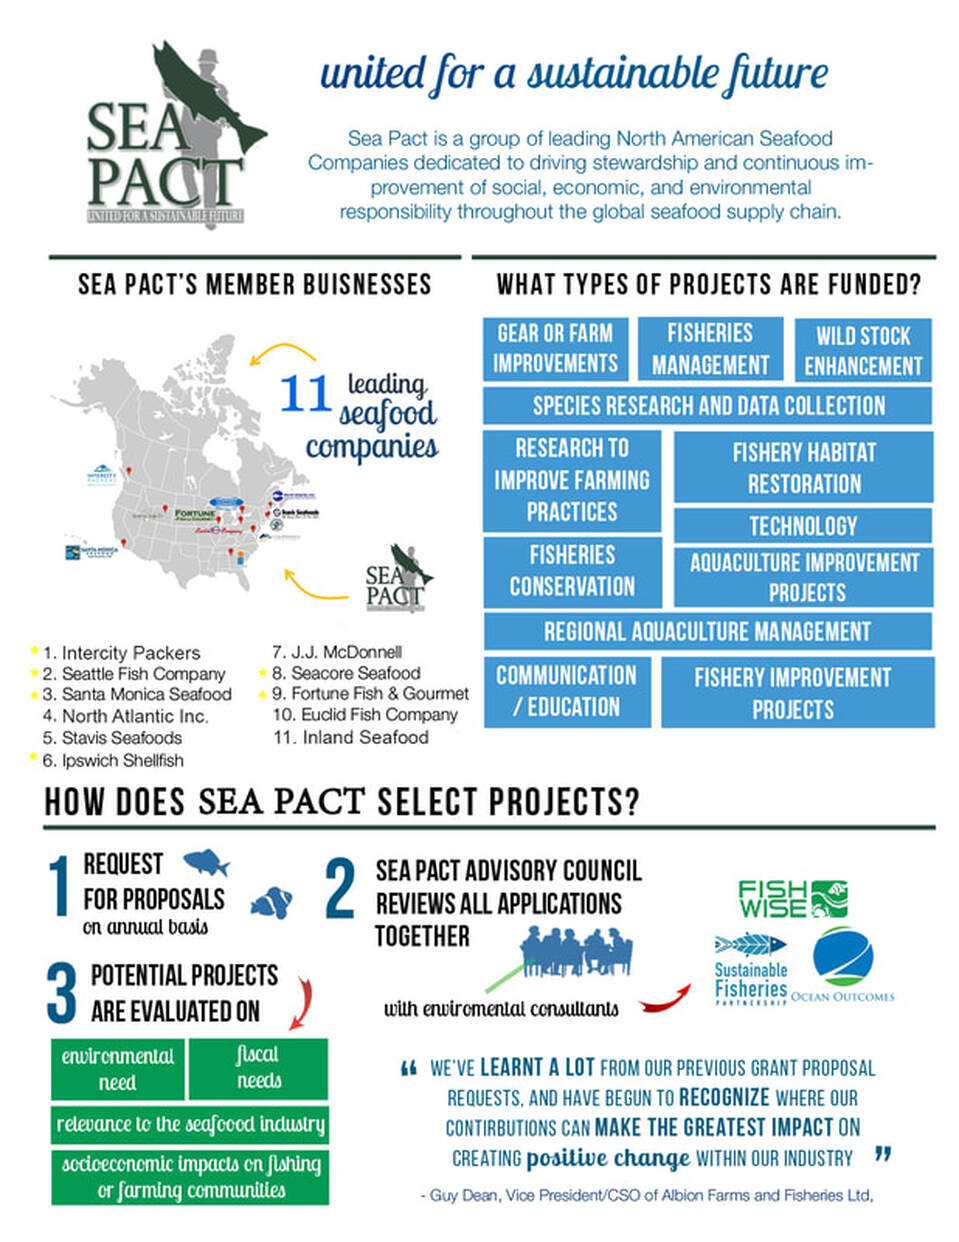 seapact-infographic-update-oct2019-1